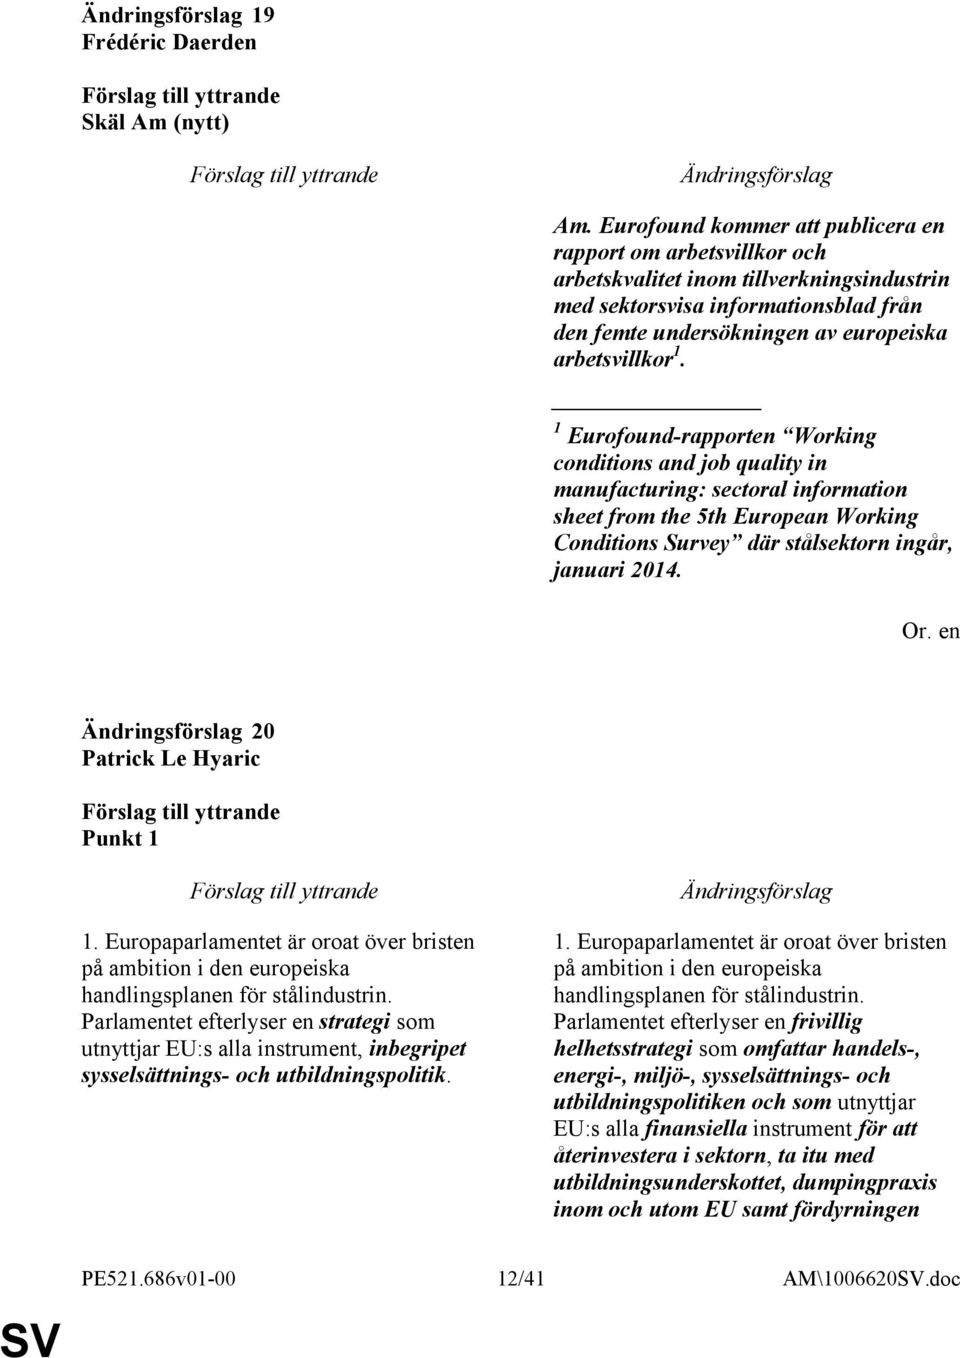 1 Eurofound-rapporten Working conditions and job quality in manufacturing: sectoral information sheet from the 5th European Working Conditions Survey där stålsektorn ingår, januari 2014.